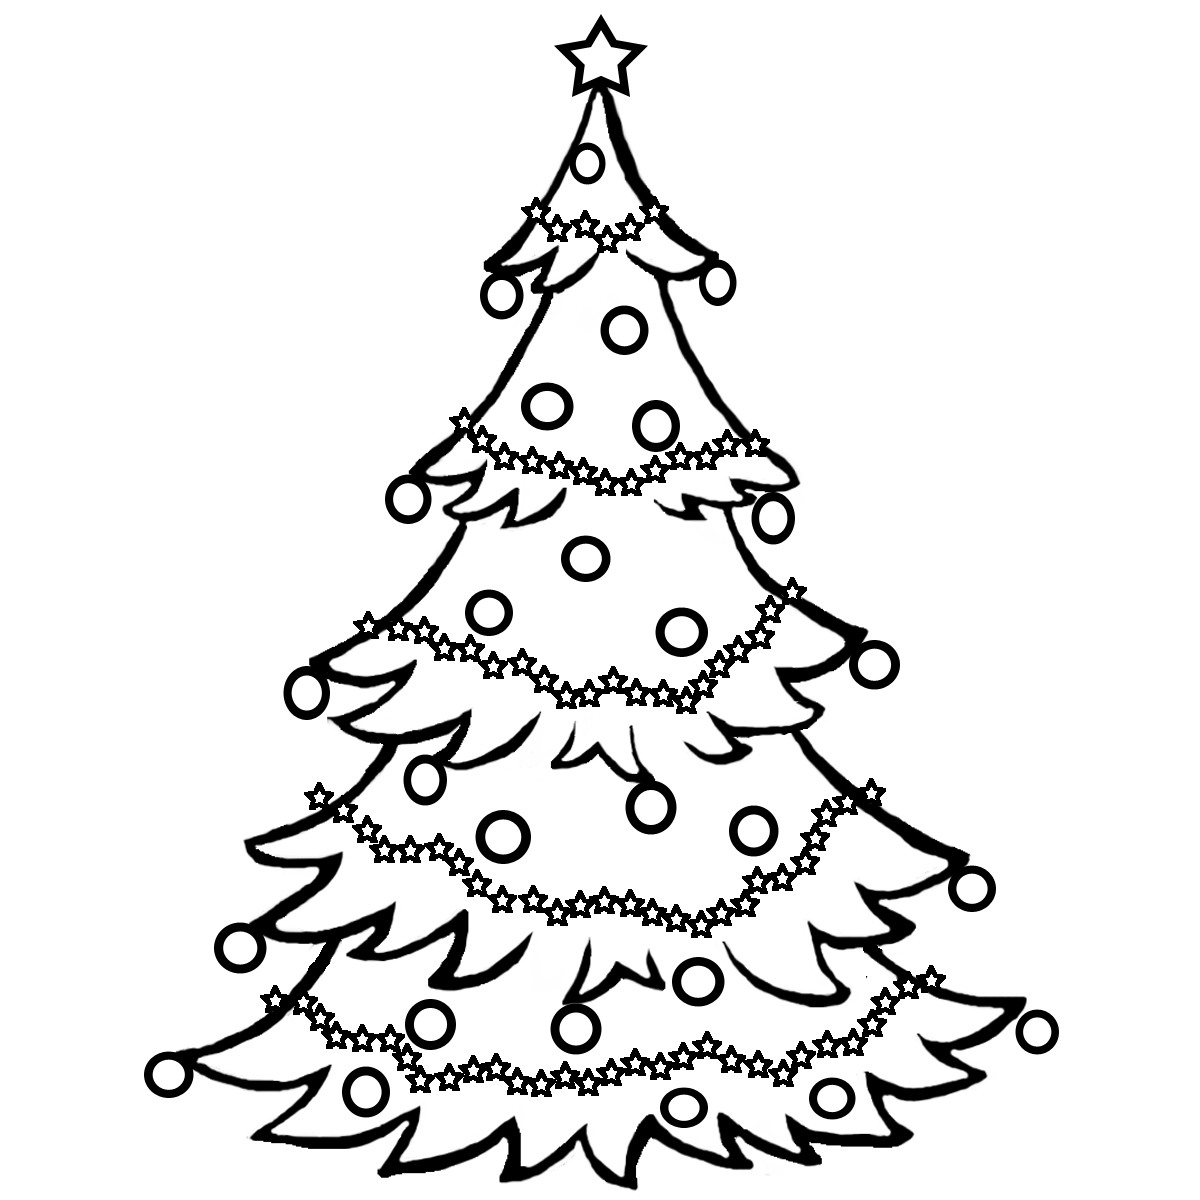 Christmas Tree Ornaments Clipart Black And White